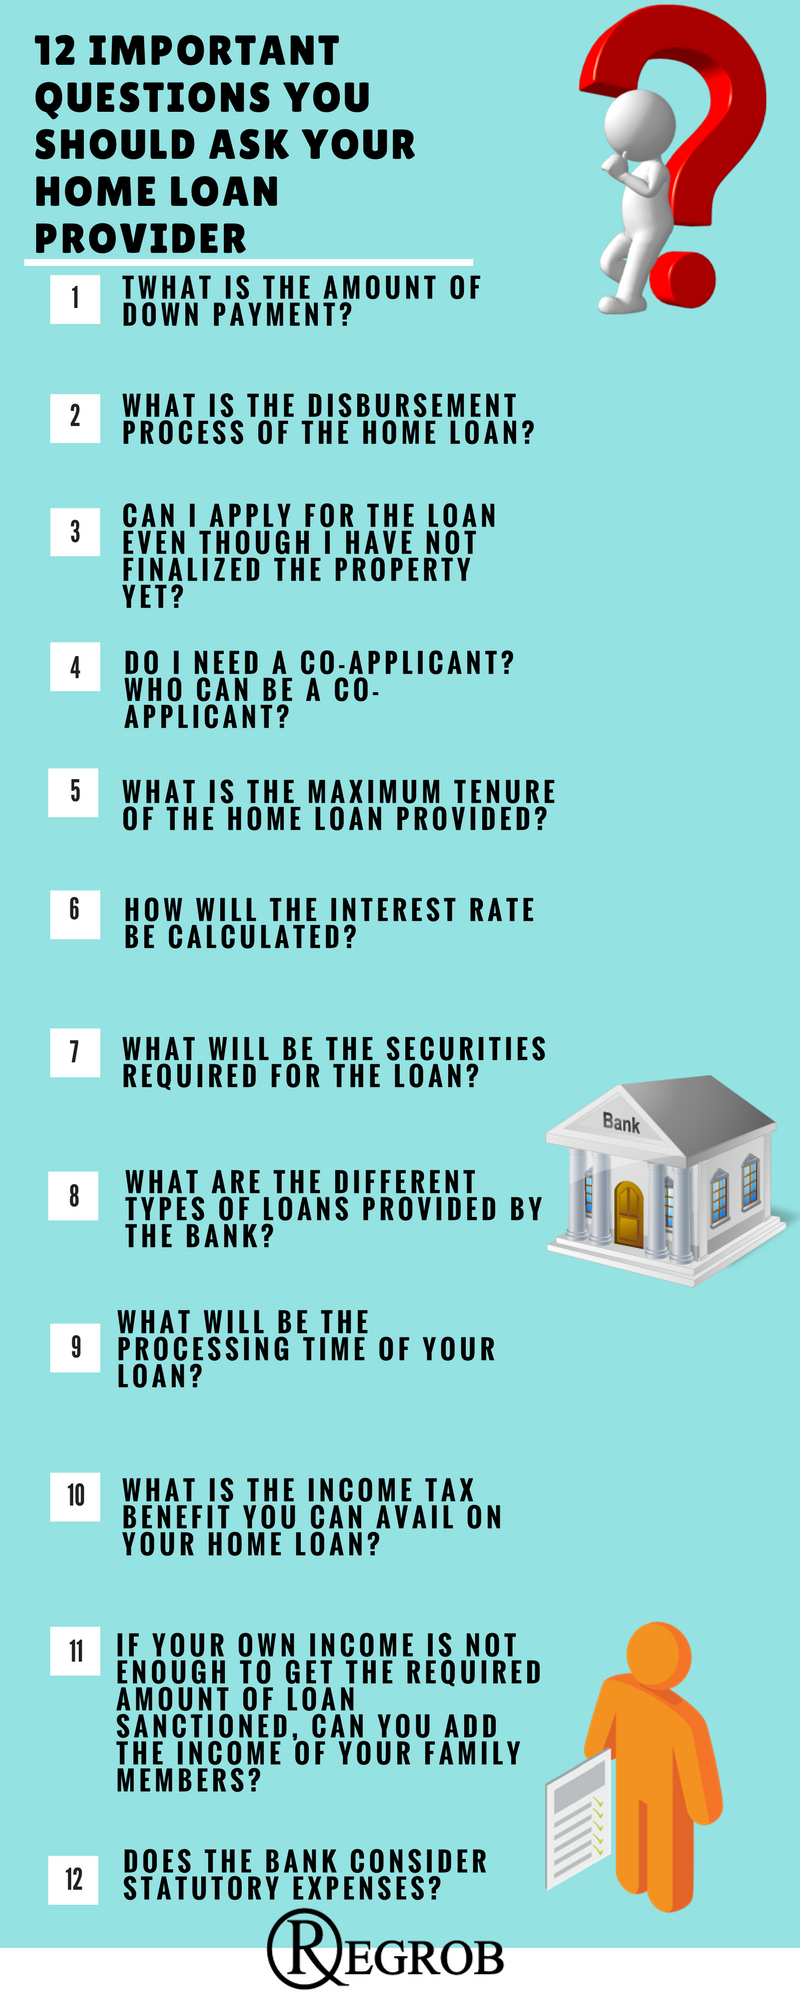 12 important questions you should ask your home loan provider.